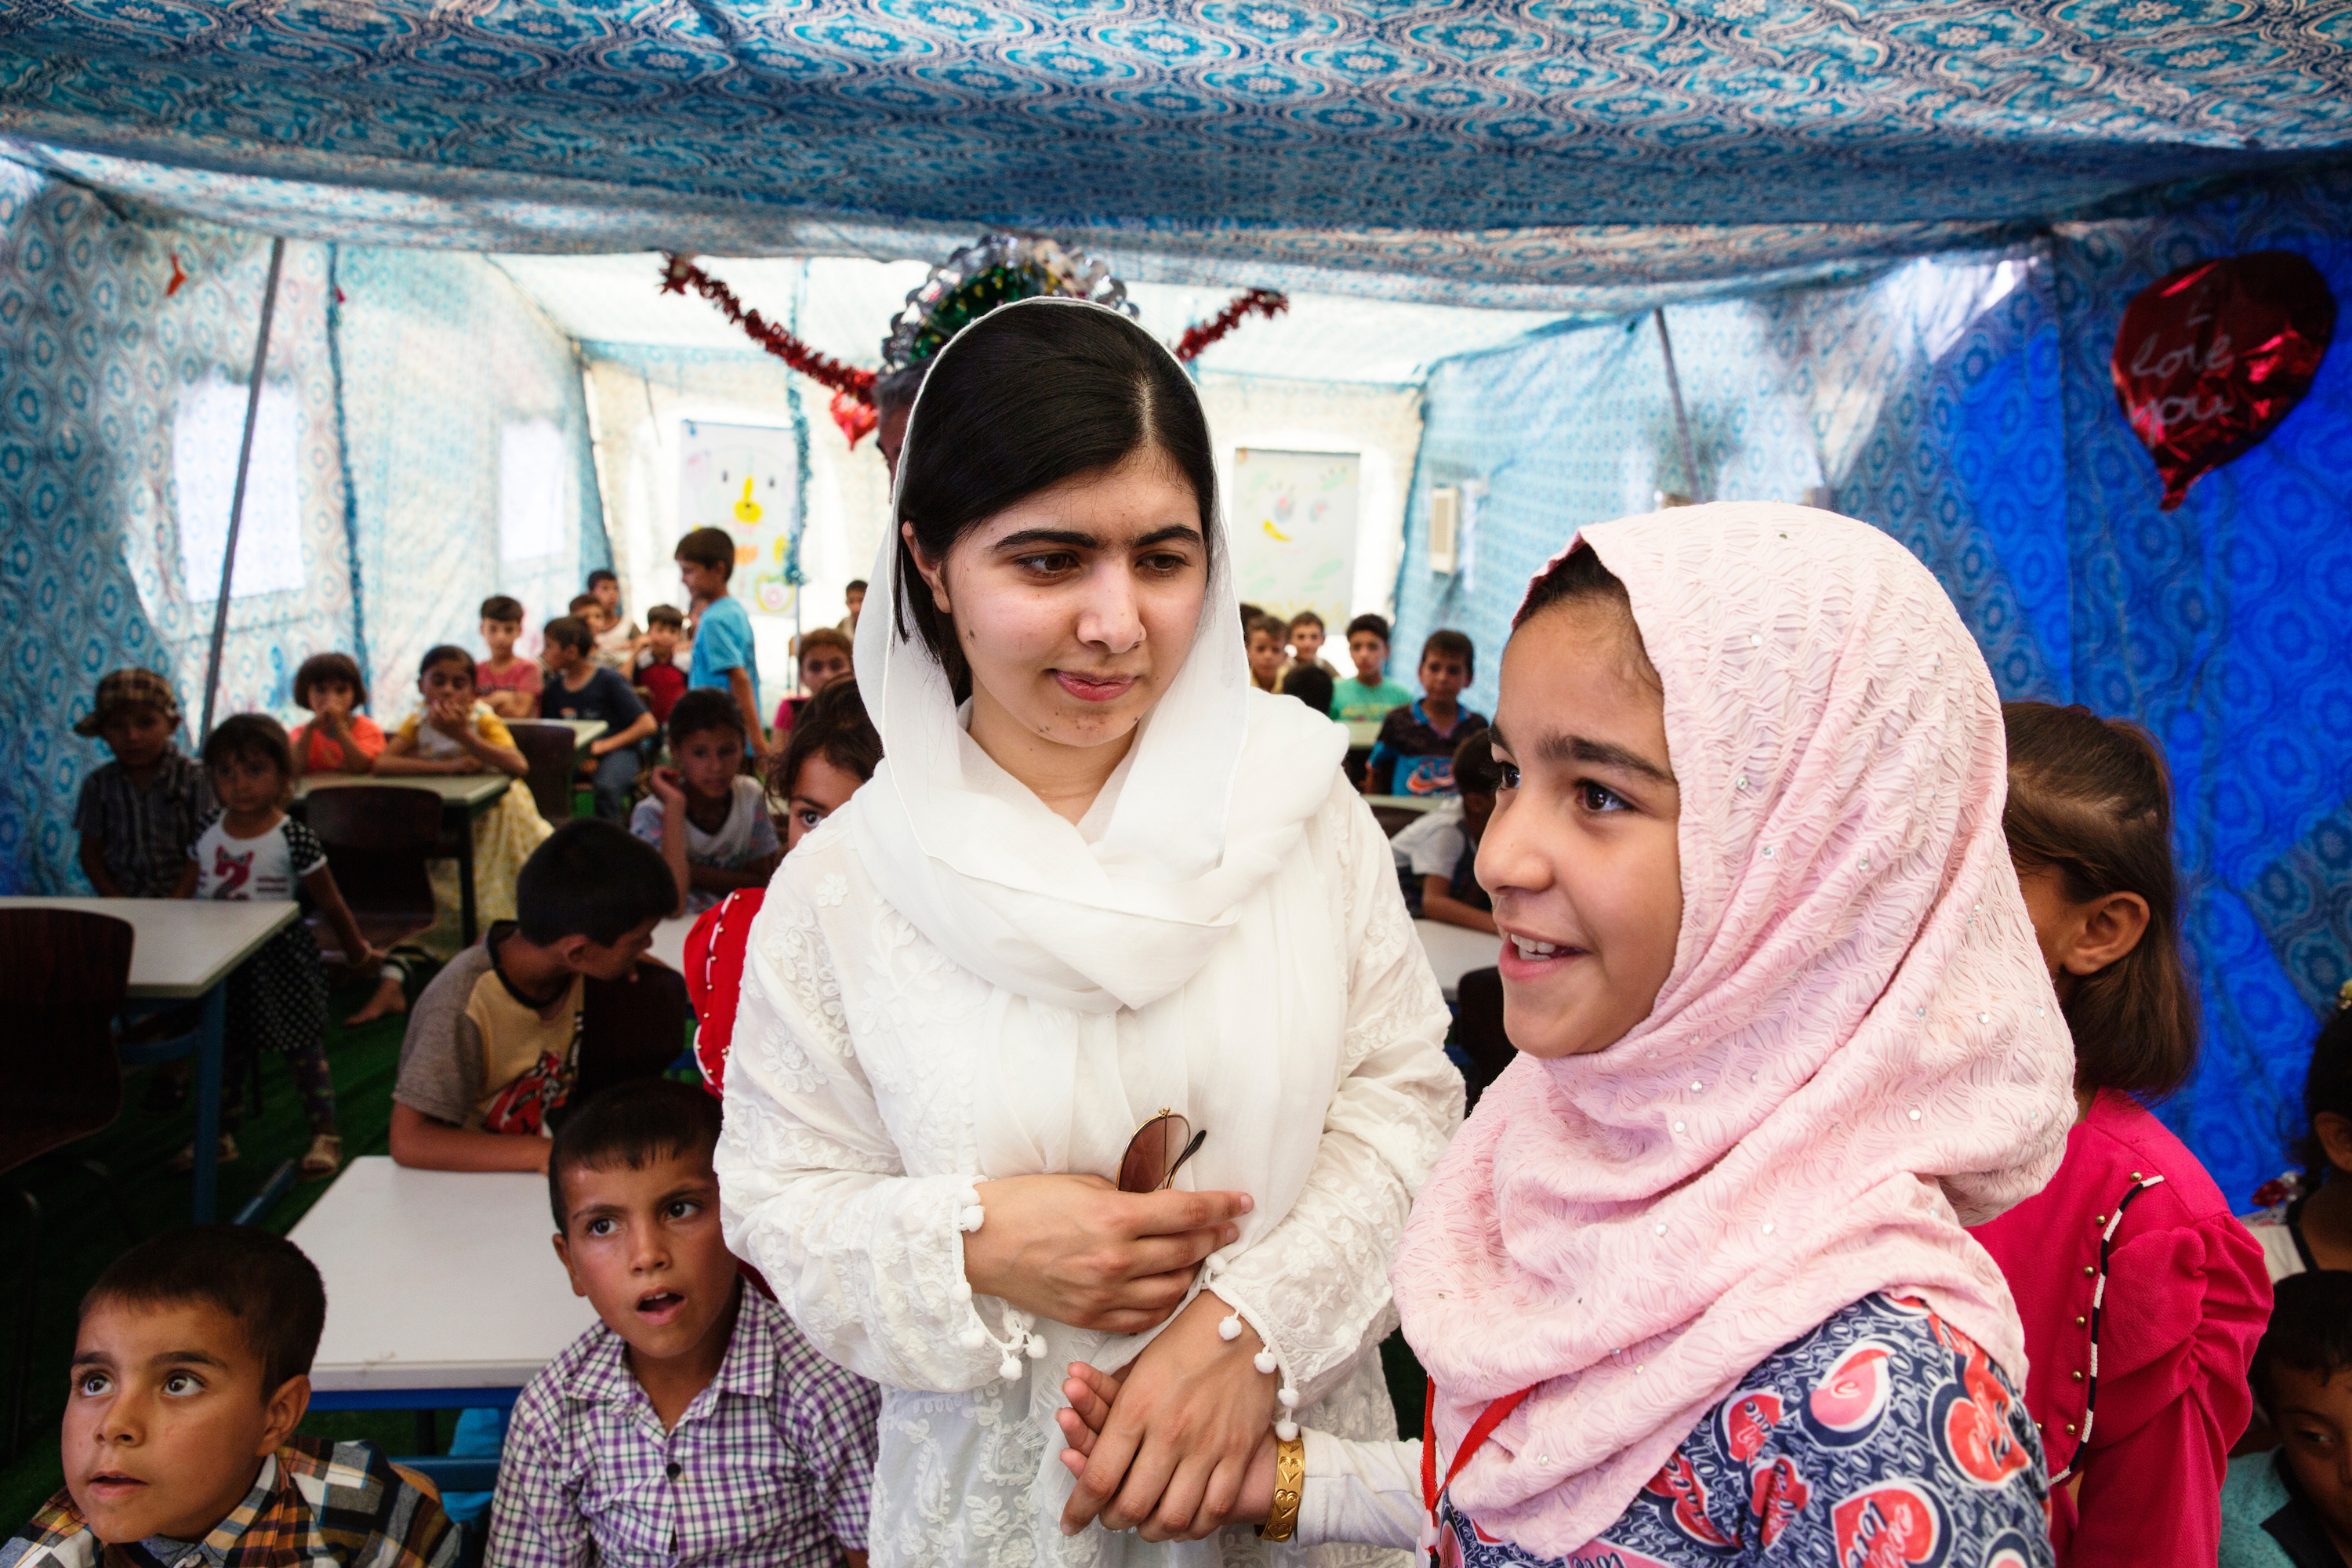 Malala Yousafzai visits children, who are back in school after living in ISIS-controlled Mosul, at a refugee camp on July 11, 2017.